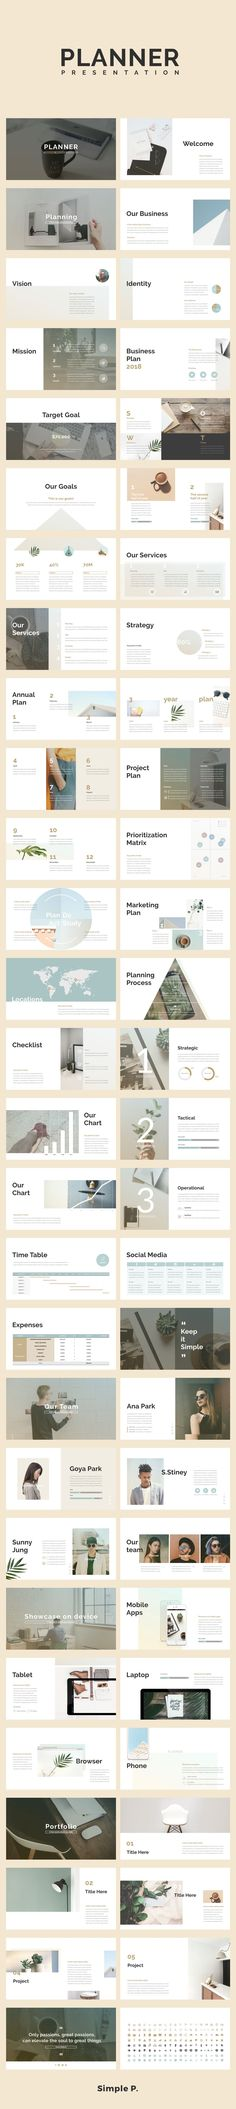 Planner Keynote Template, 2018 Planner, Business Planning #presentation #simple